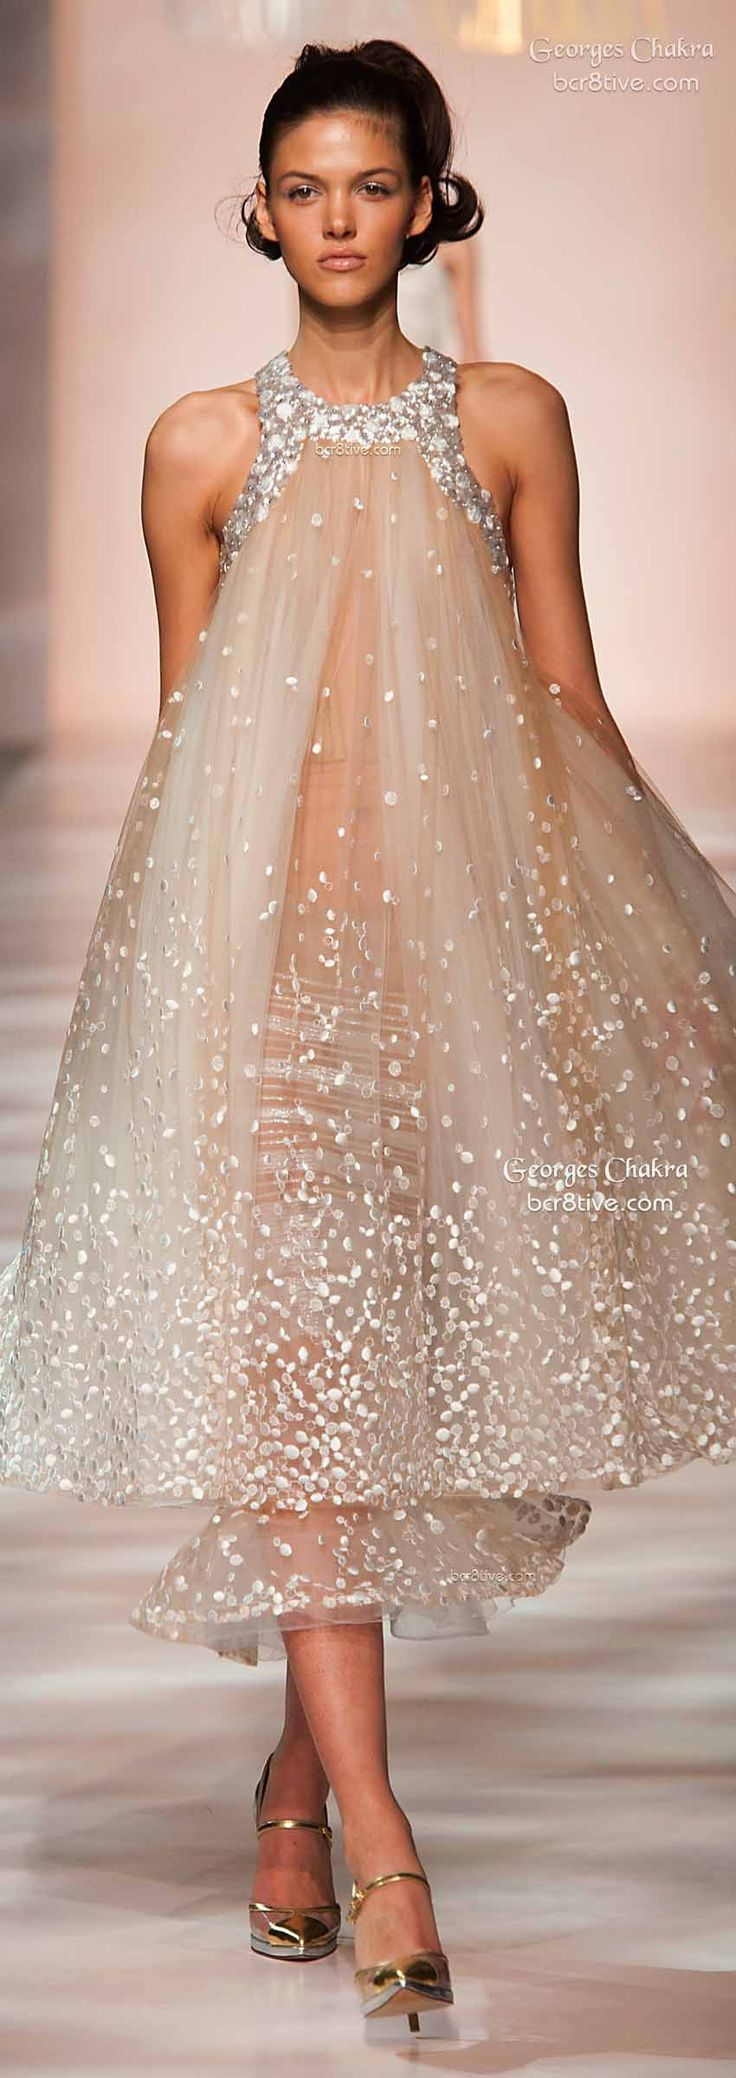 Christmas wedding dress mishaps - Georges Chakra Spring 2015